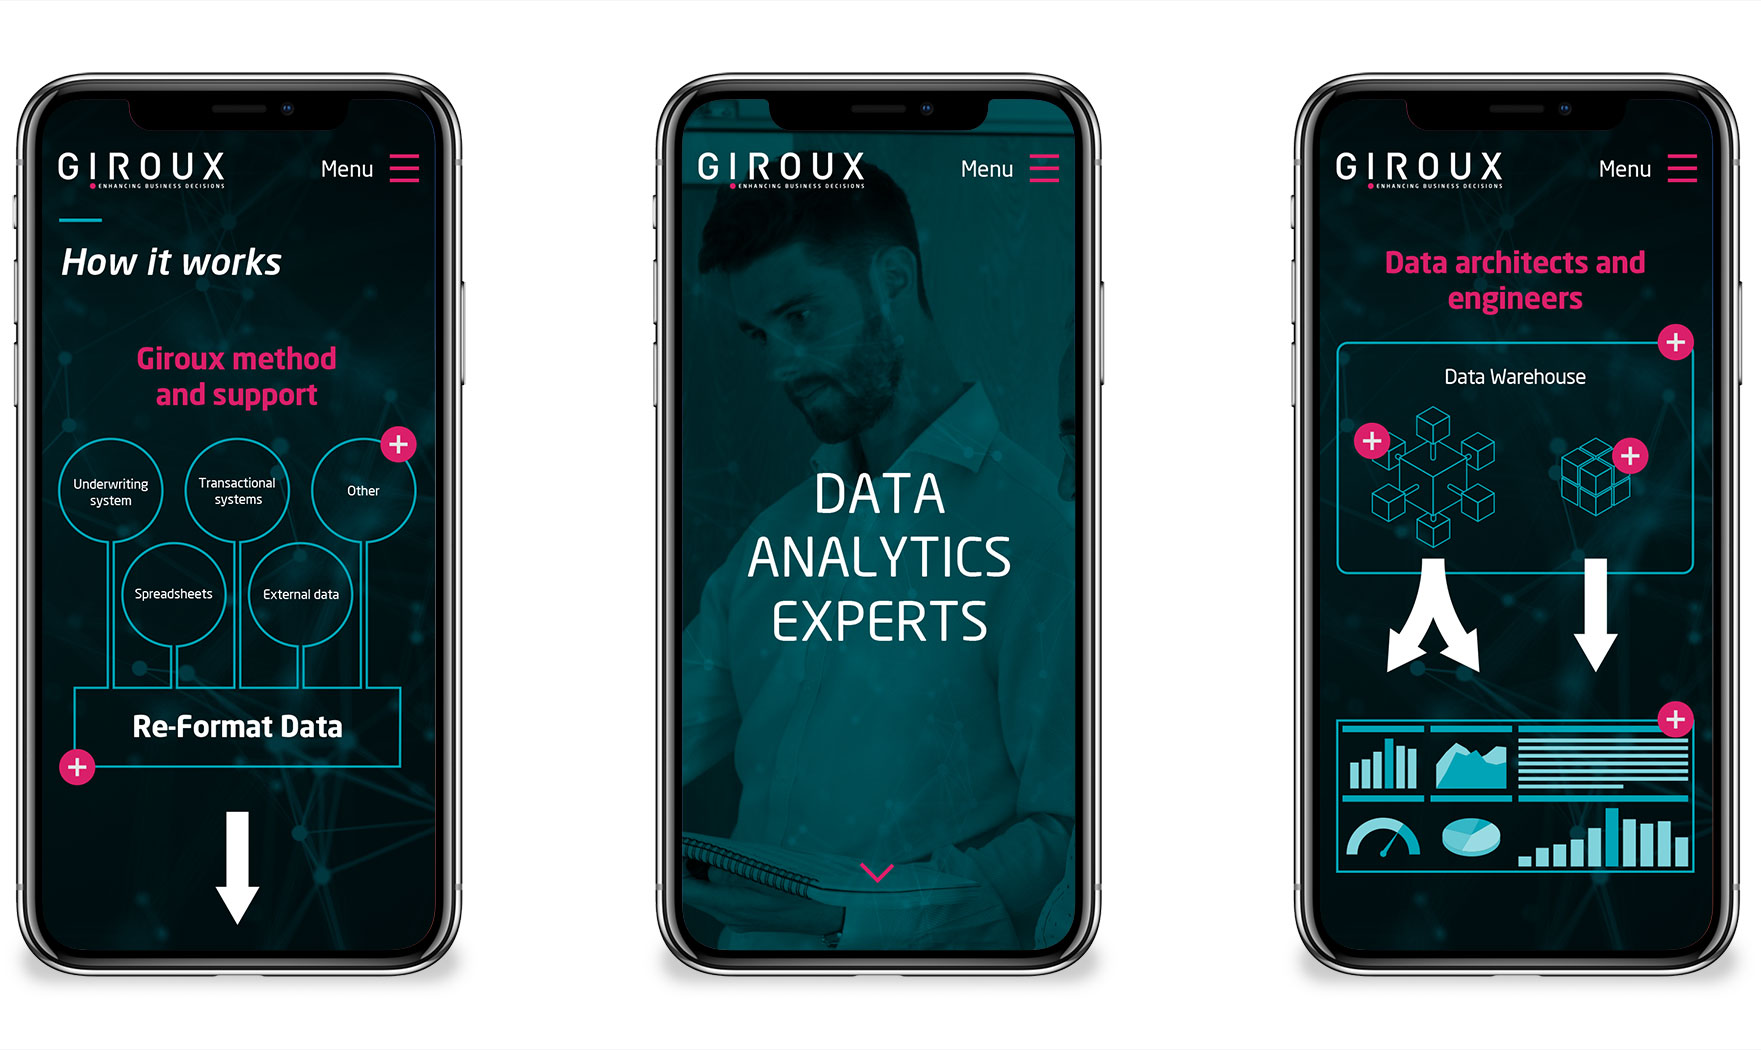 Giroux web app design visuals